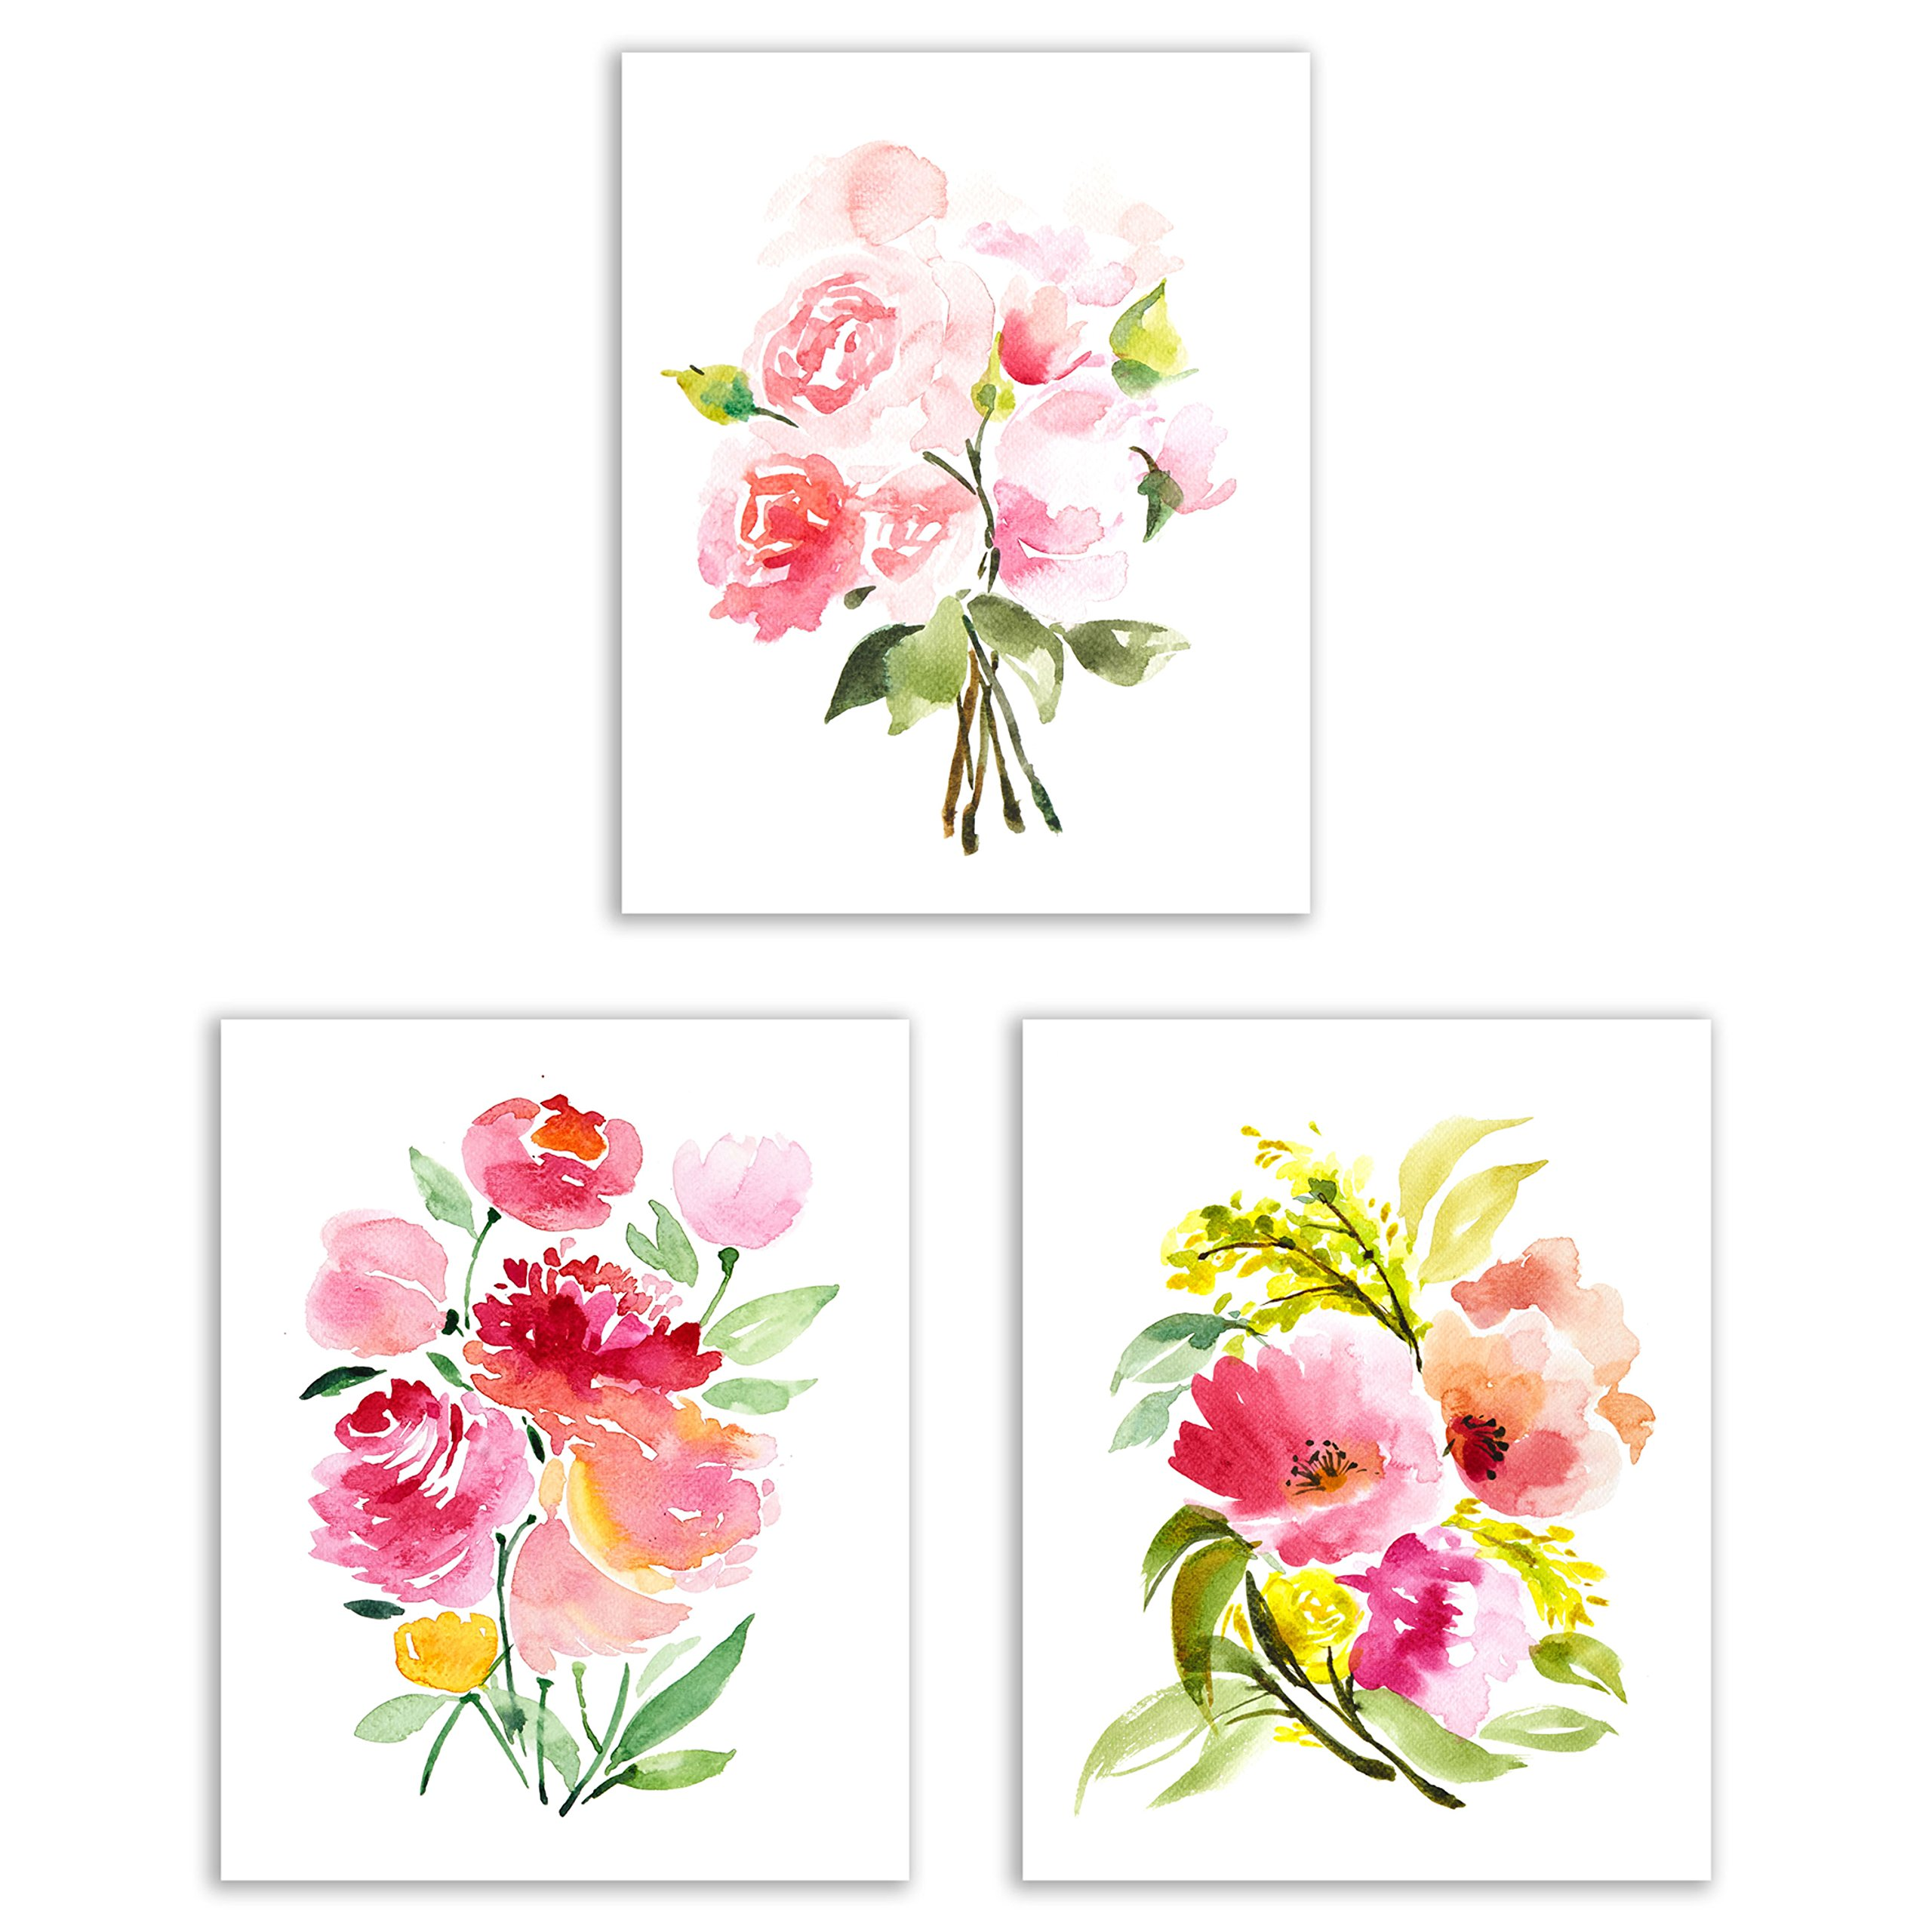 Floral Watercolor Pastel Fine Art Prints — Set of Three 8x10 Photos — Pretty Pink Collection of Zinnias, Poppies, Peonies and Ranunculus by Tangible Prints